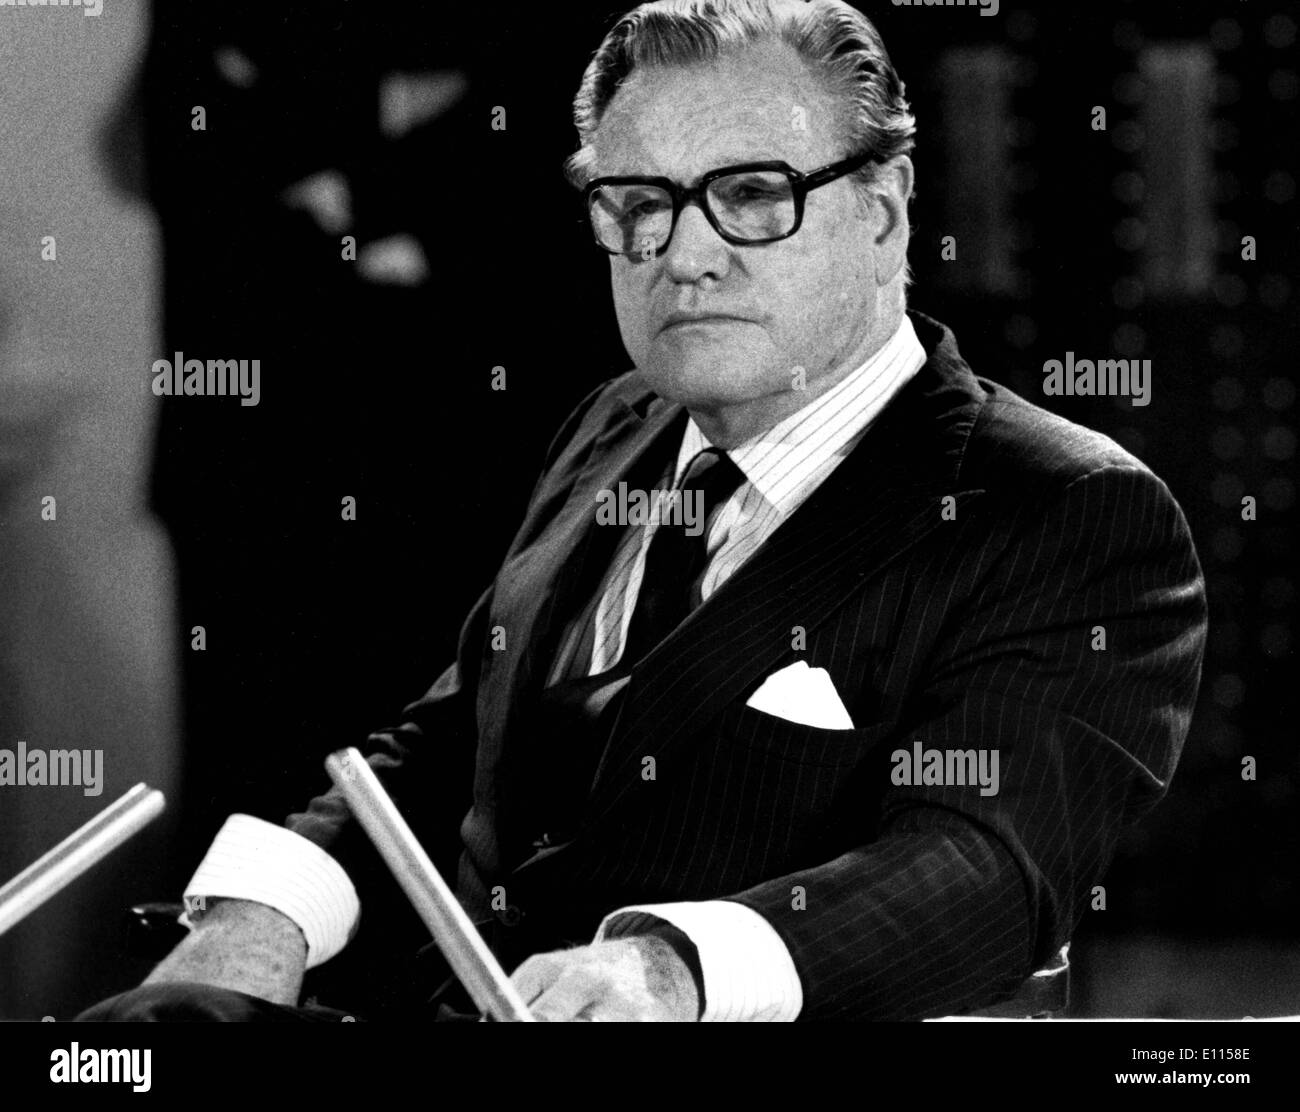 Aug 27, 1975; New York, NY, USA; Vice President under Gerald Ford, NELSON ROCKEFELLER, testifies before the Noreland Commission - Stock Image